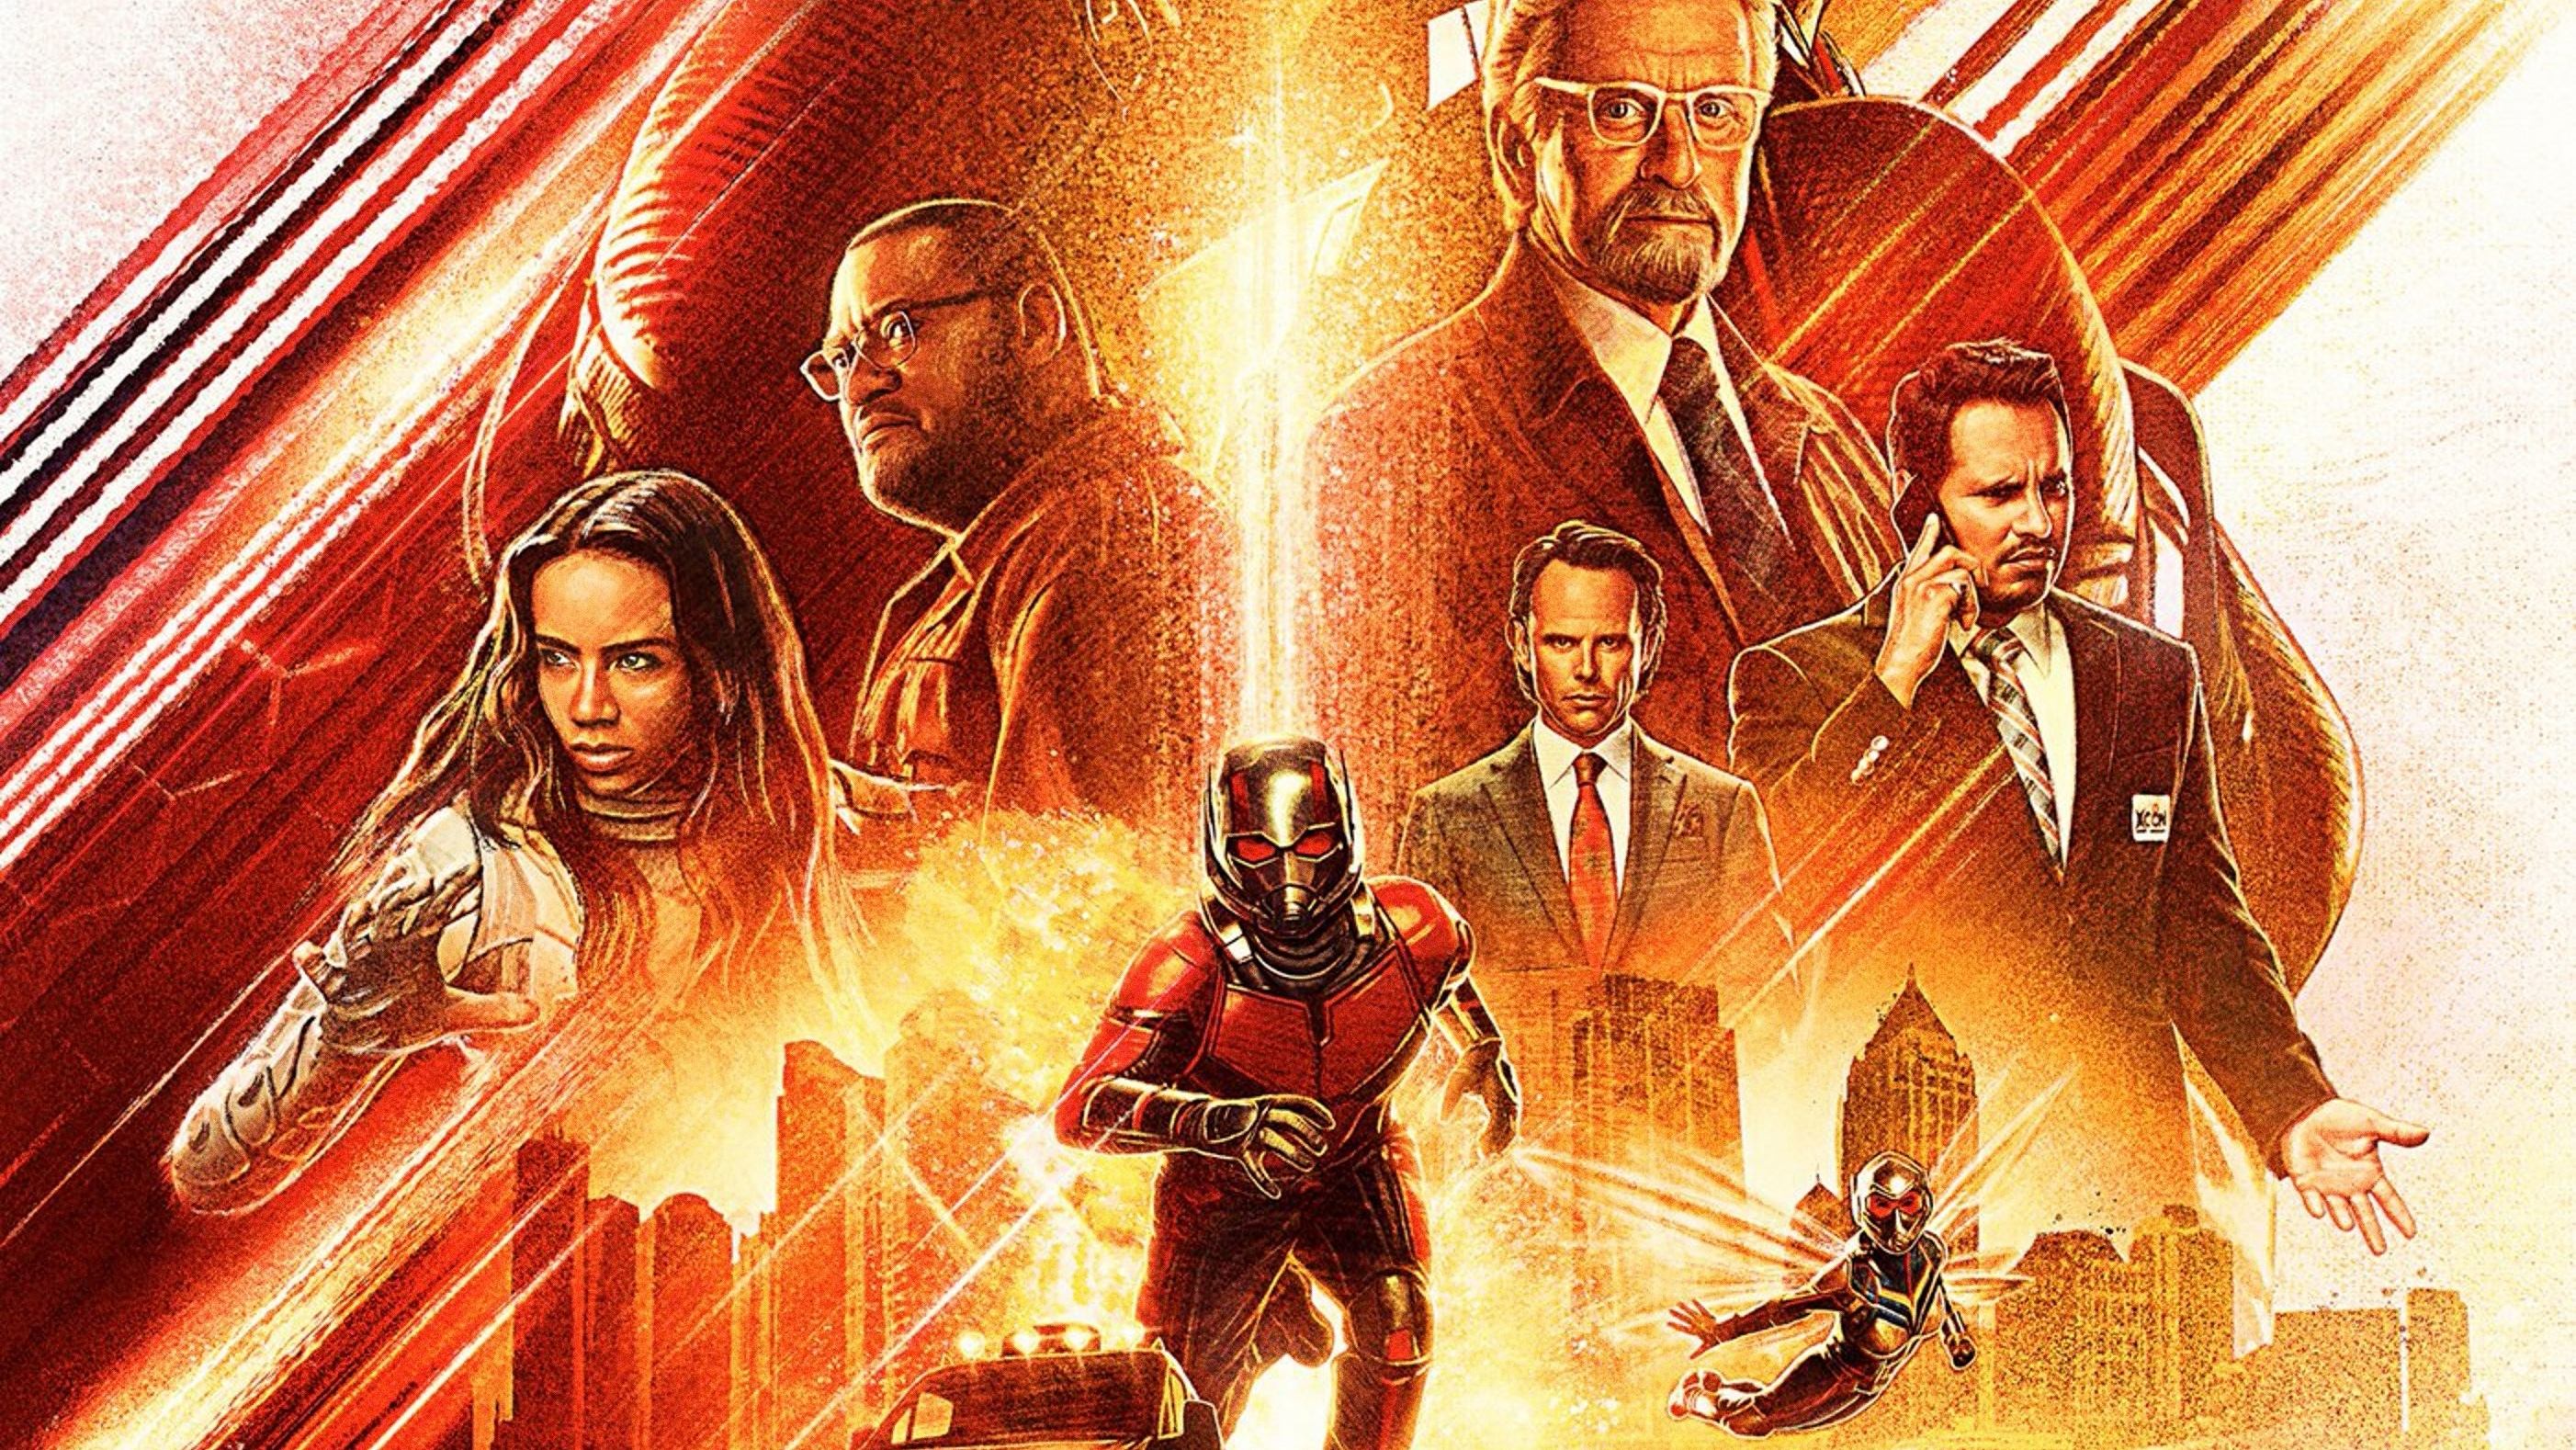 Ant Man And The Wasp Wallpaper: Ant Man And The Wasp Movie International Poster, HD Movies